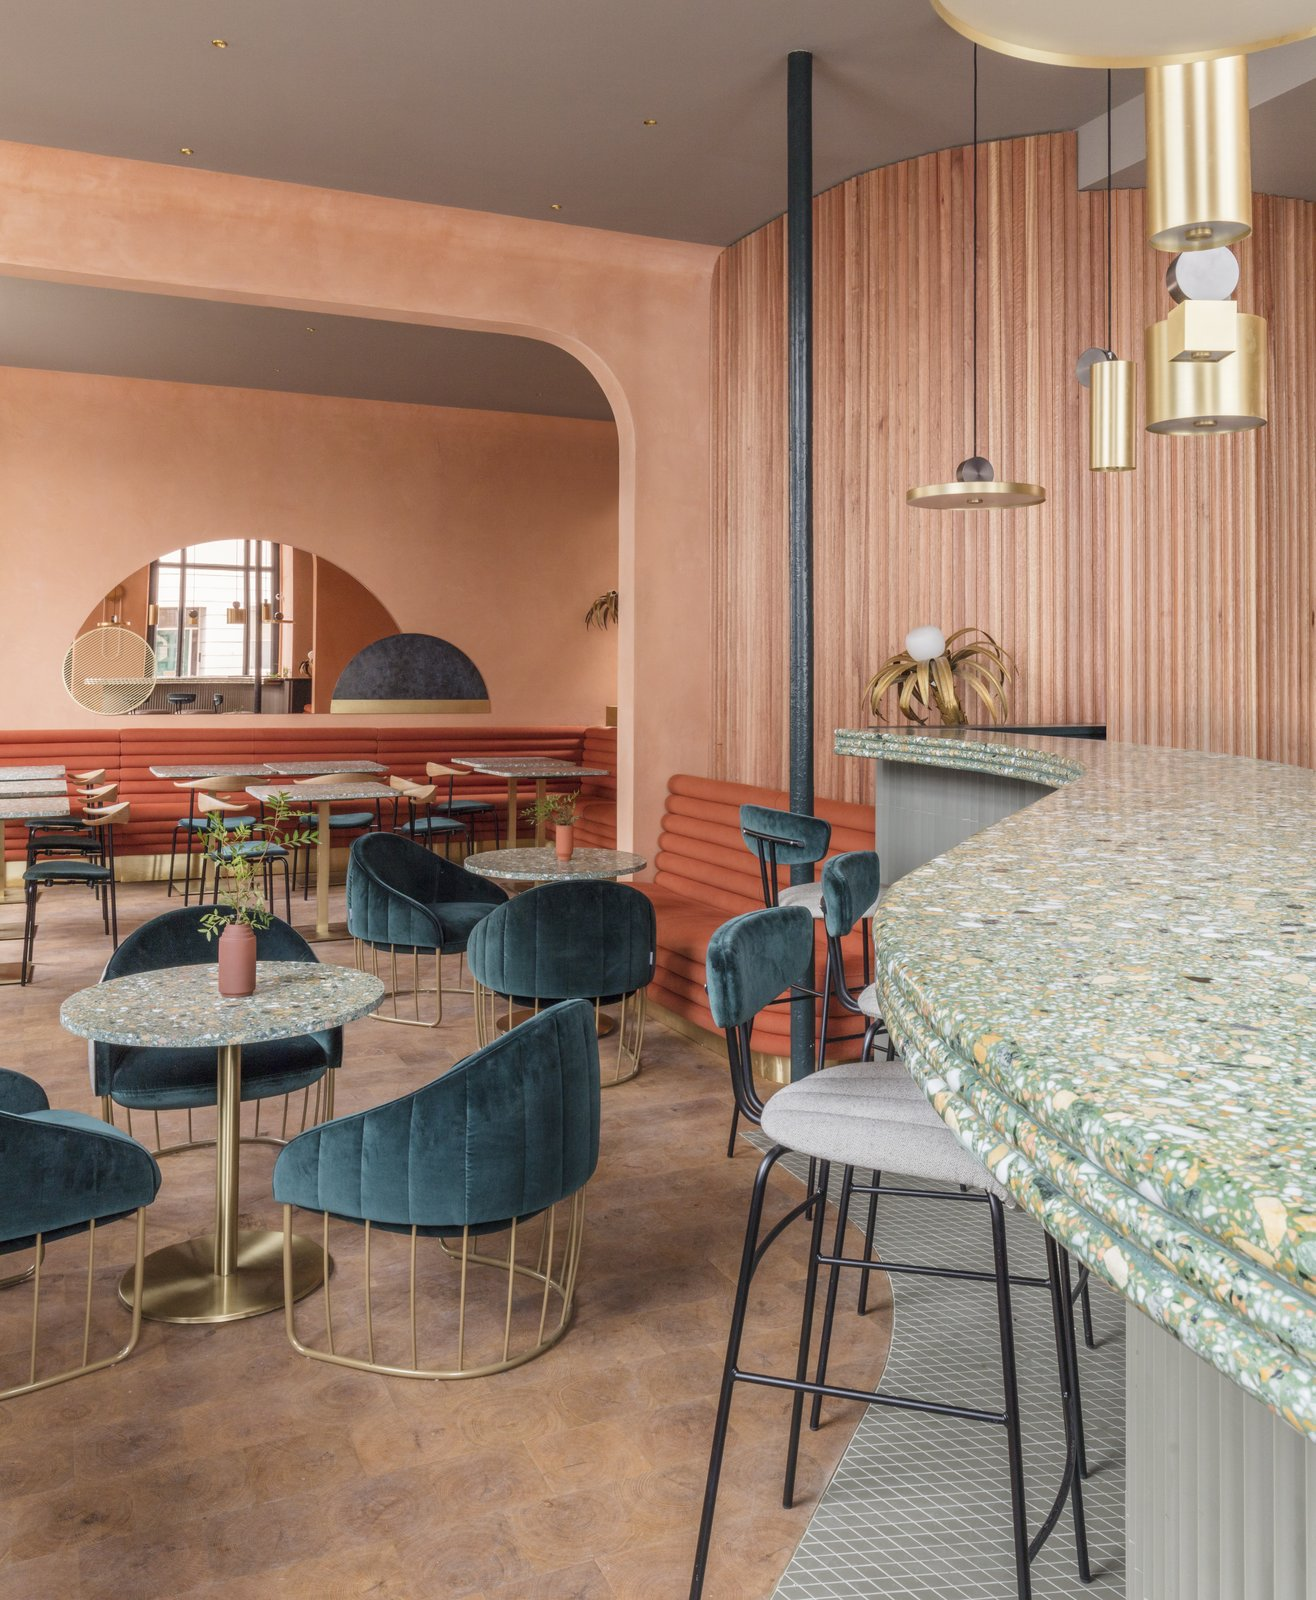 Dining Room, Table, Pendant Lighting, Stools, Chair, Medium Hardwood Floor, and Bar The menu features creations from Mallorcan-born Michelin-kitchen veteran chef Vicente Fortea.  Photo 7 of 8 in A Historic London Property Is Converted Into a Modern Mediterranean Eatery